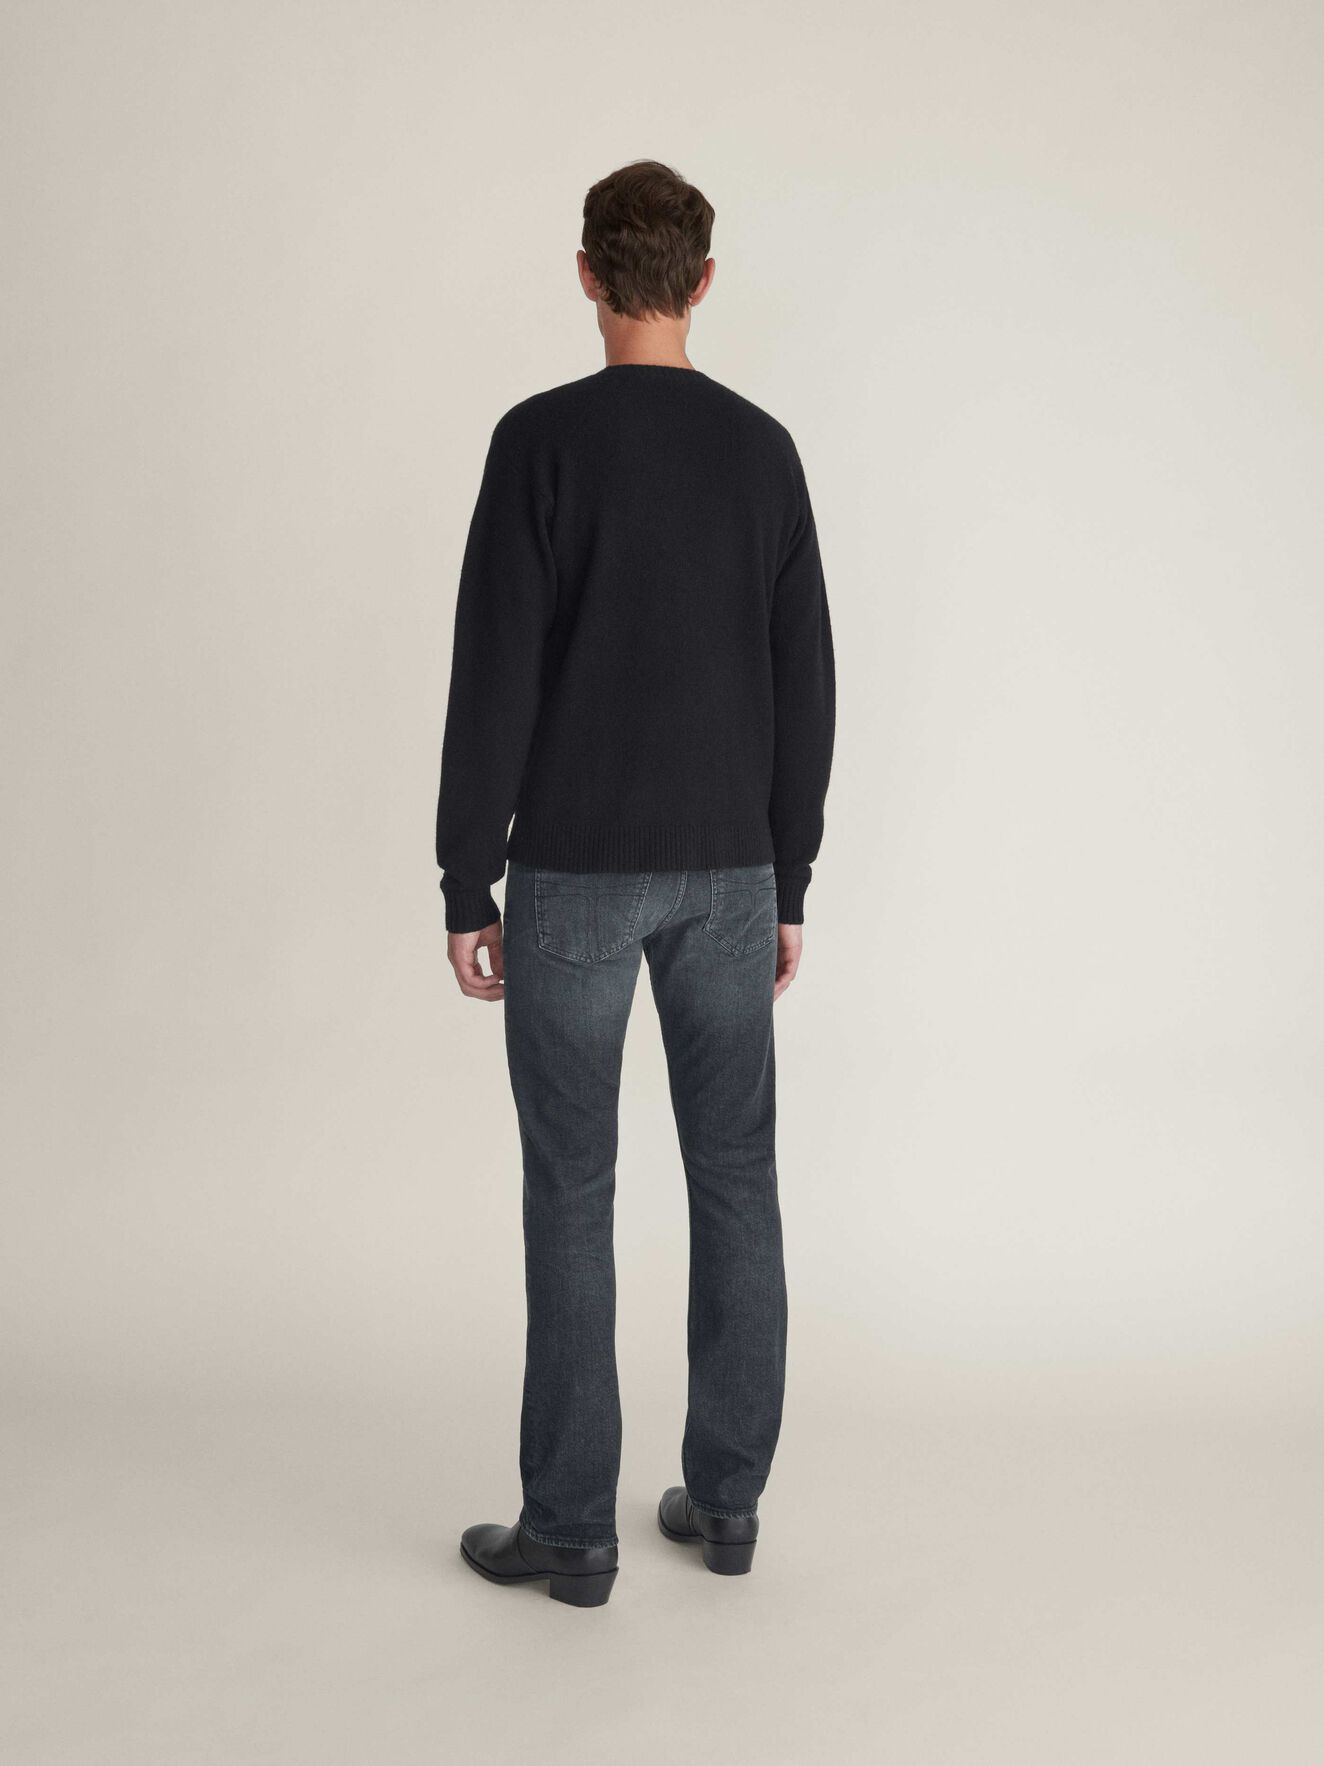 Saif Pullover in Black from Tiger of Sweden